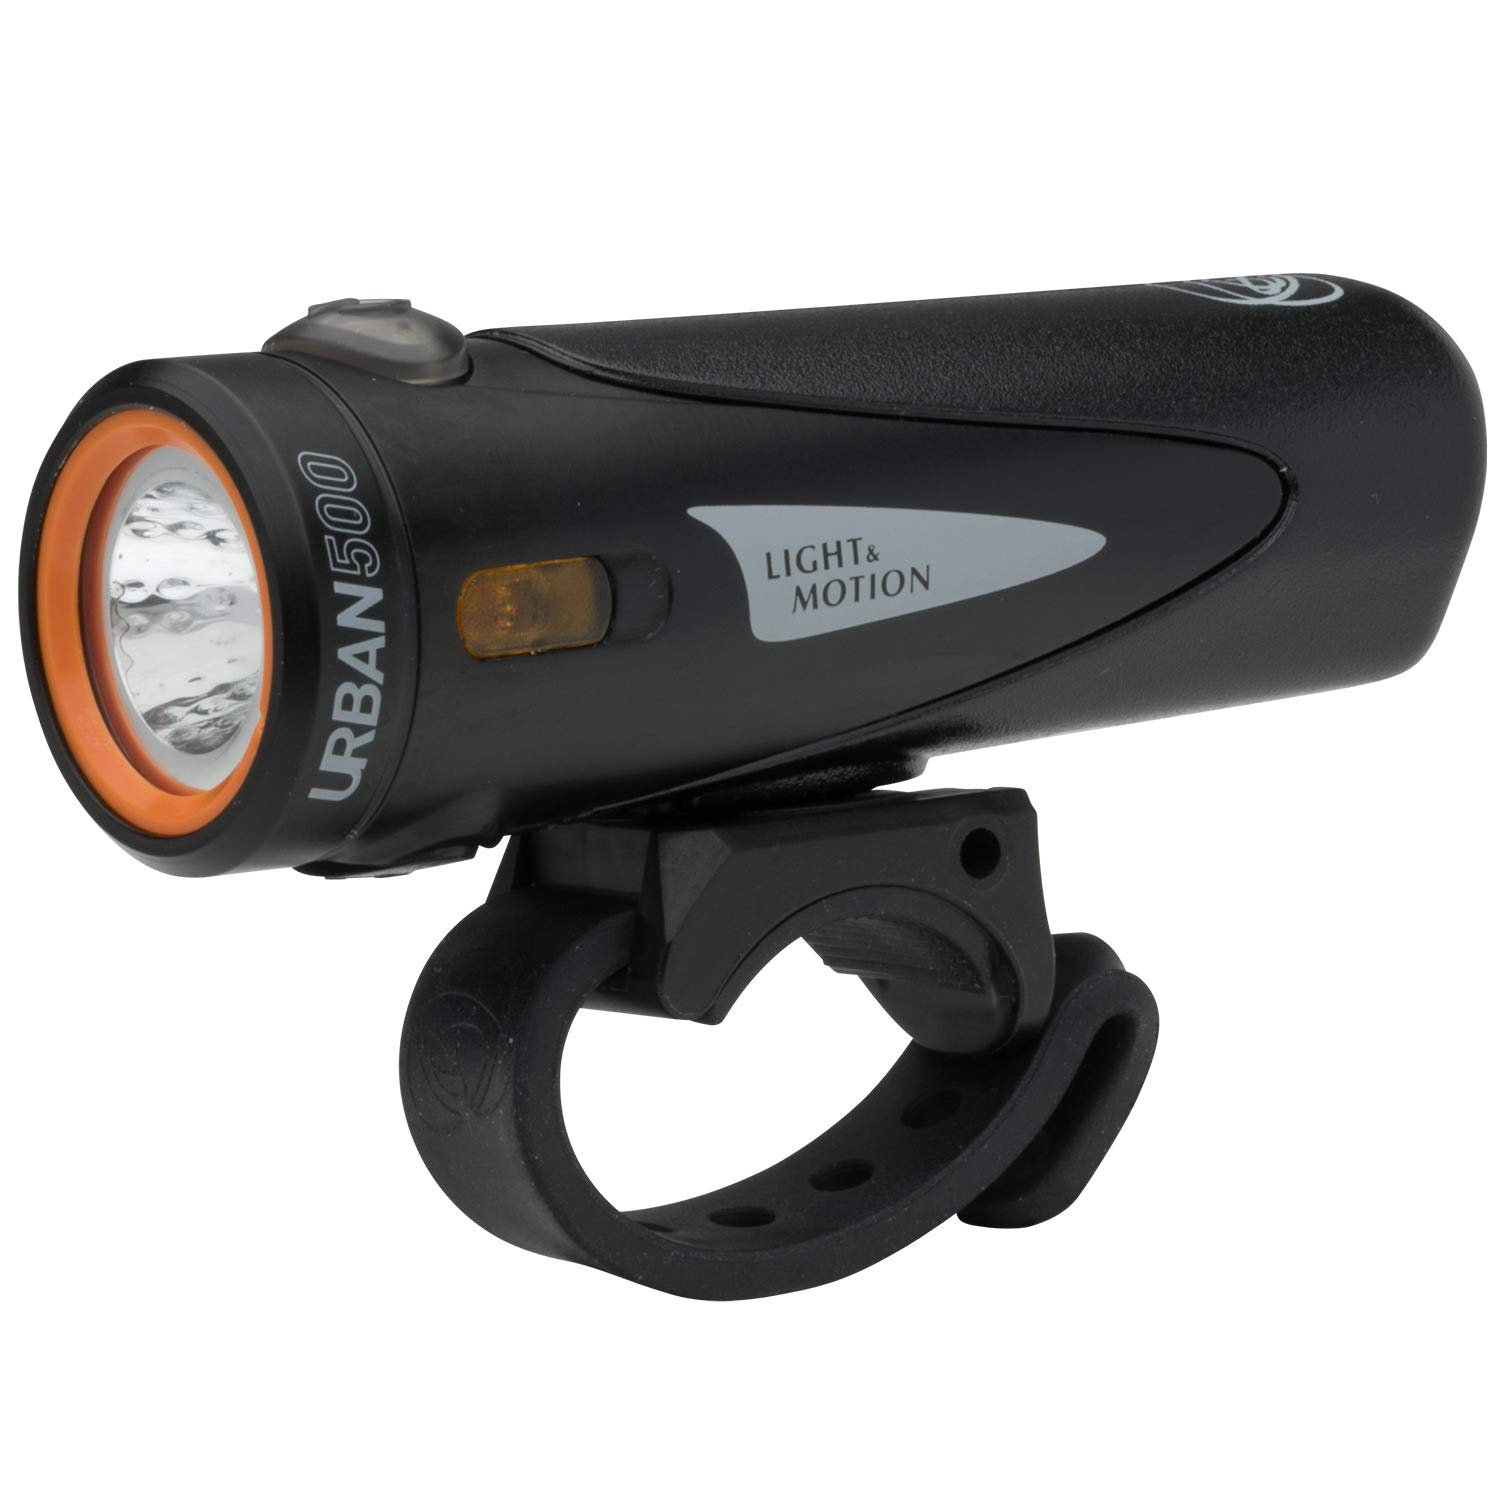 Top 9 Best Bike Lights Reviews in 2020 You Should Check Out 3